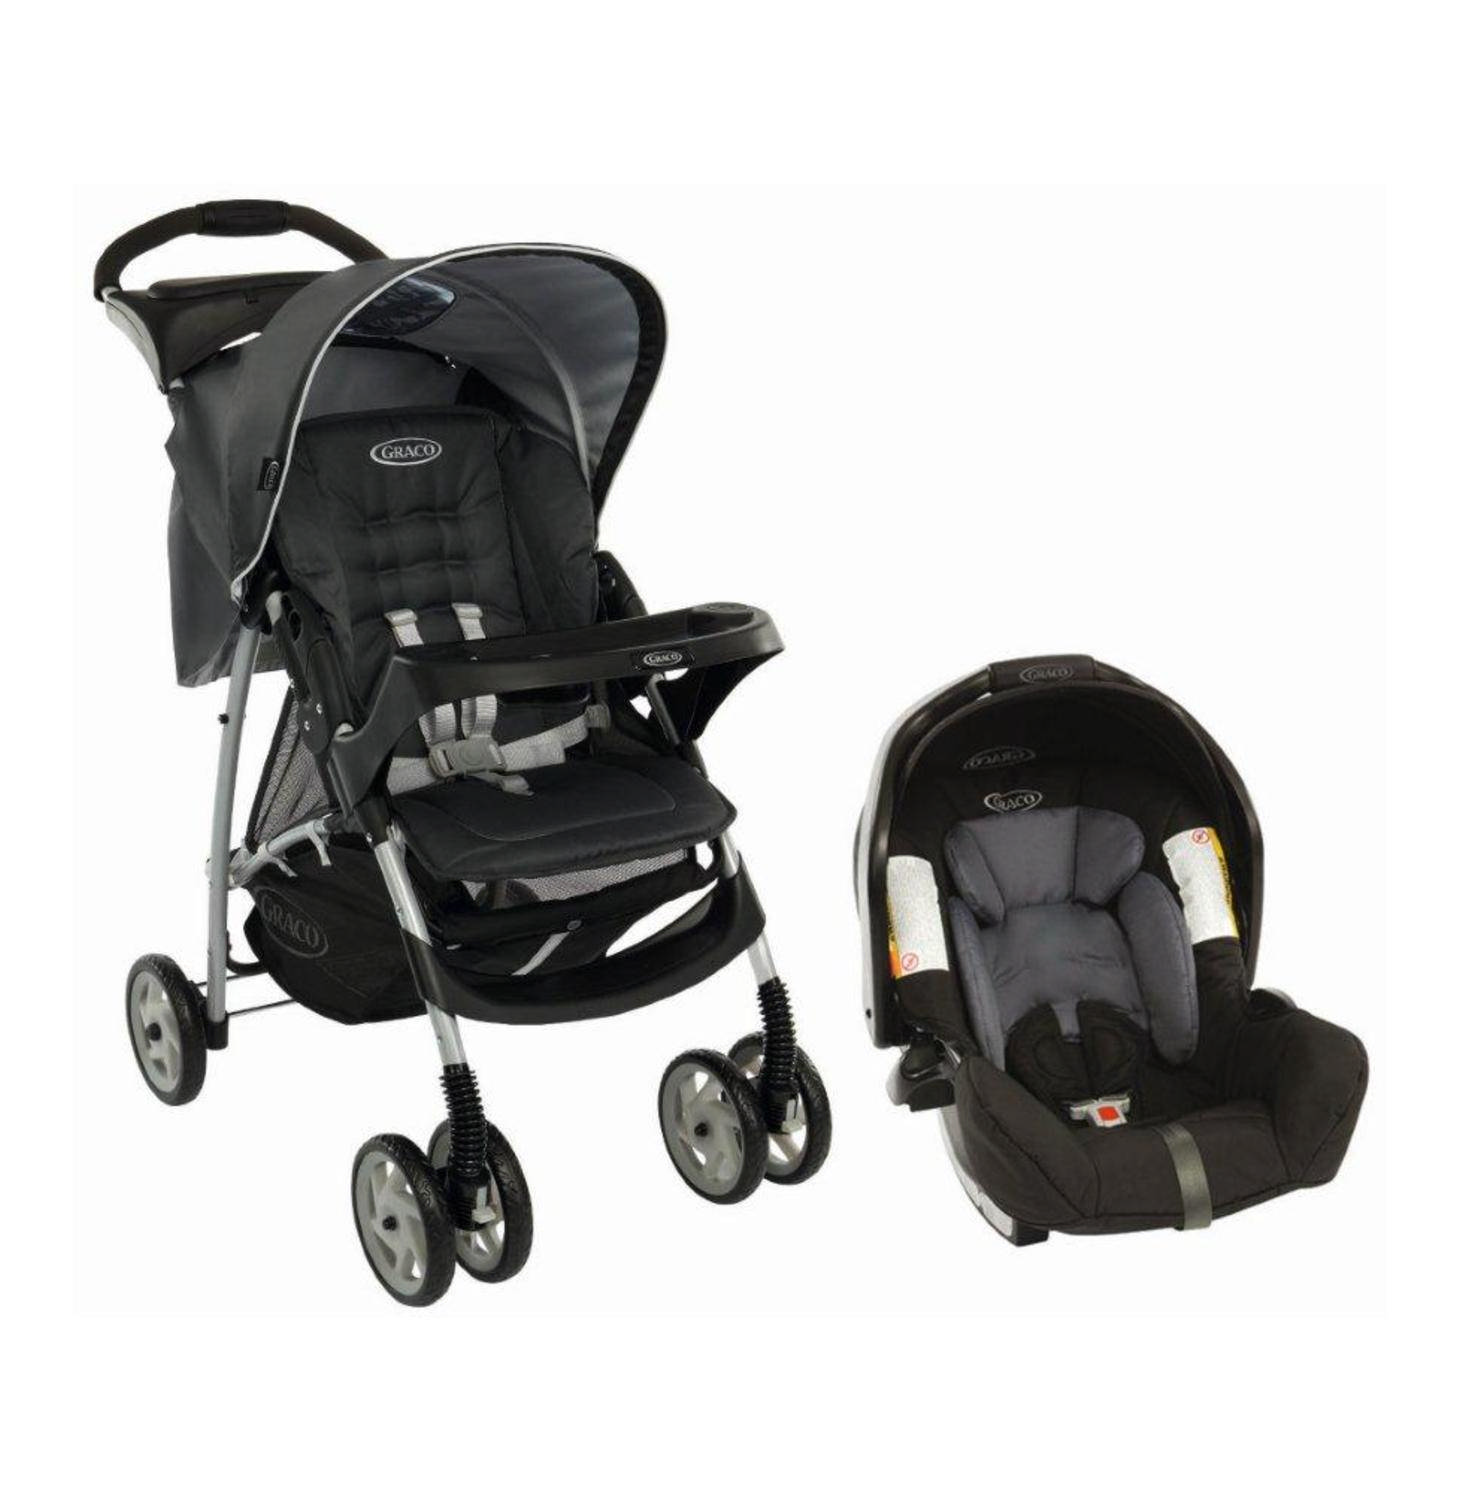 Used Graco Travel Set Pram With Snug And Safe Car Seat In